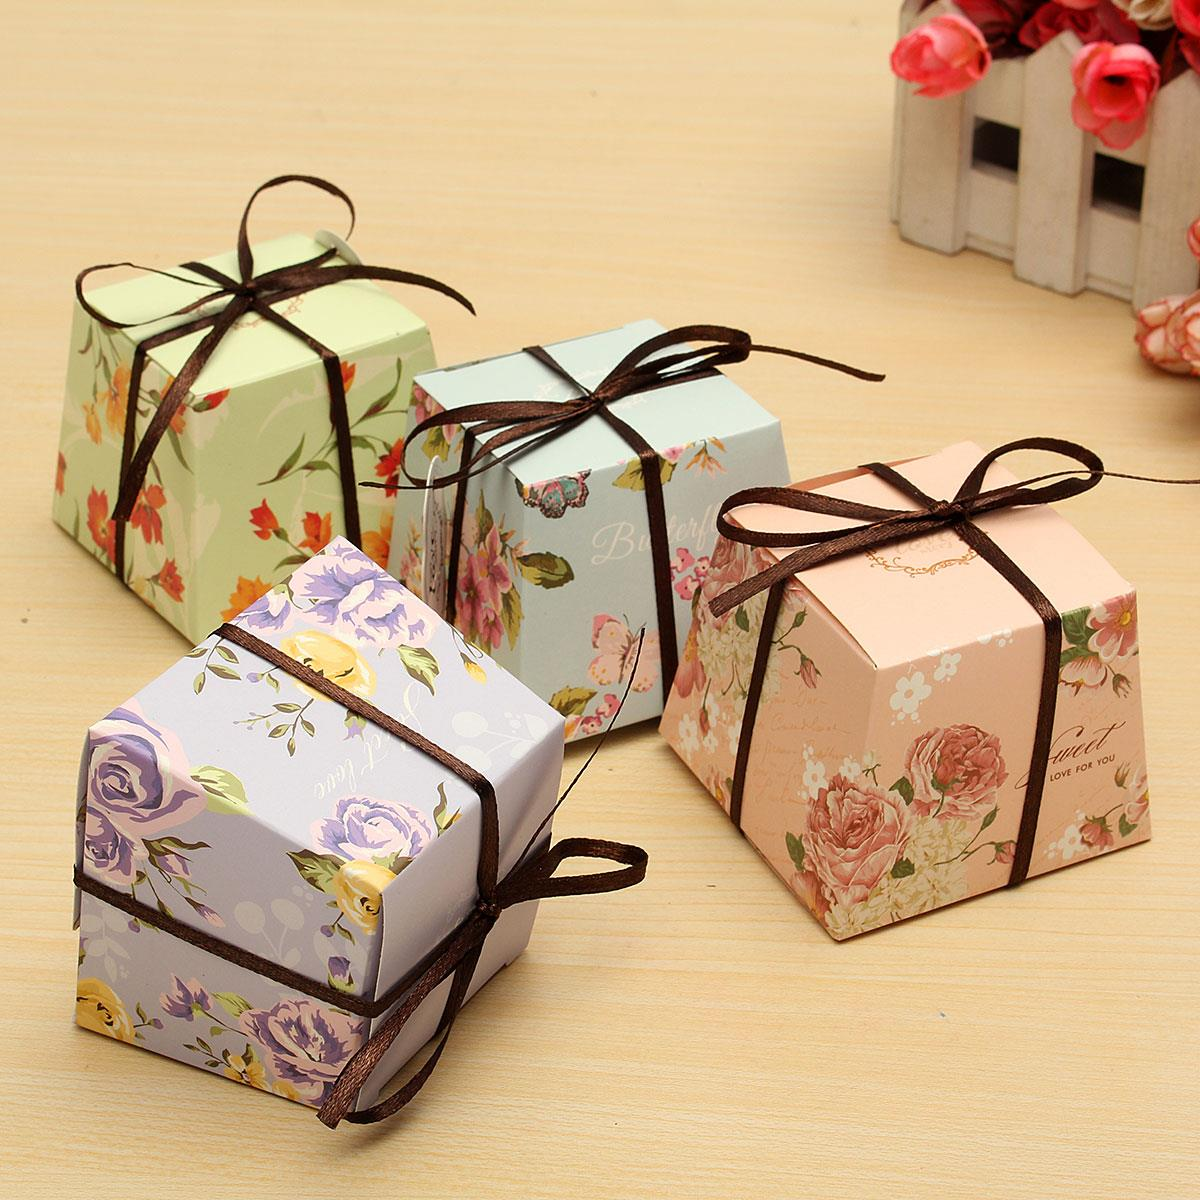 10 Pcs Floral Paper Candy Boxes Chocolate Box For Guest Wedding Favor Baby Shower Gift With Ribborns 4 Styles(China (Mainland))